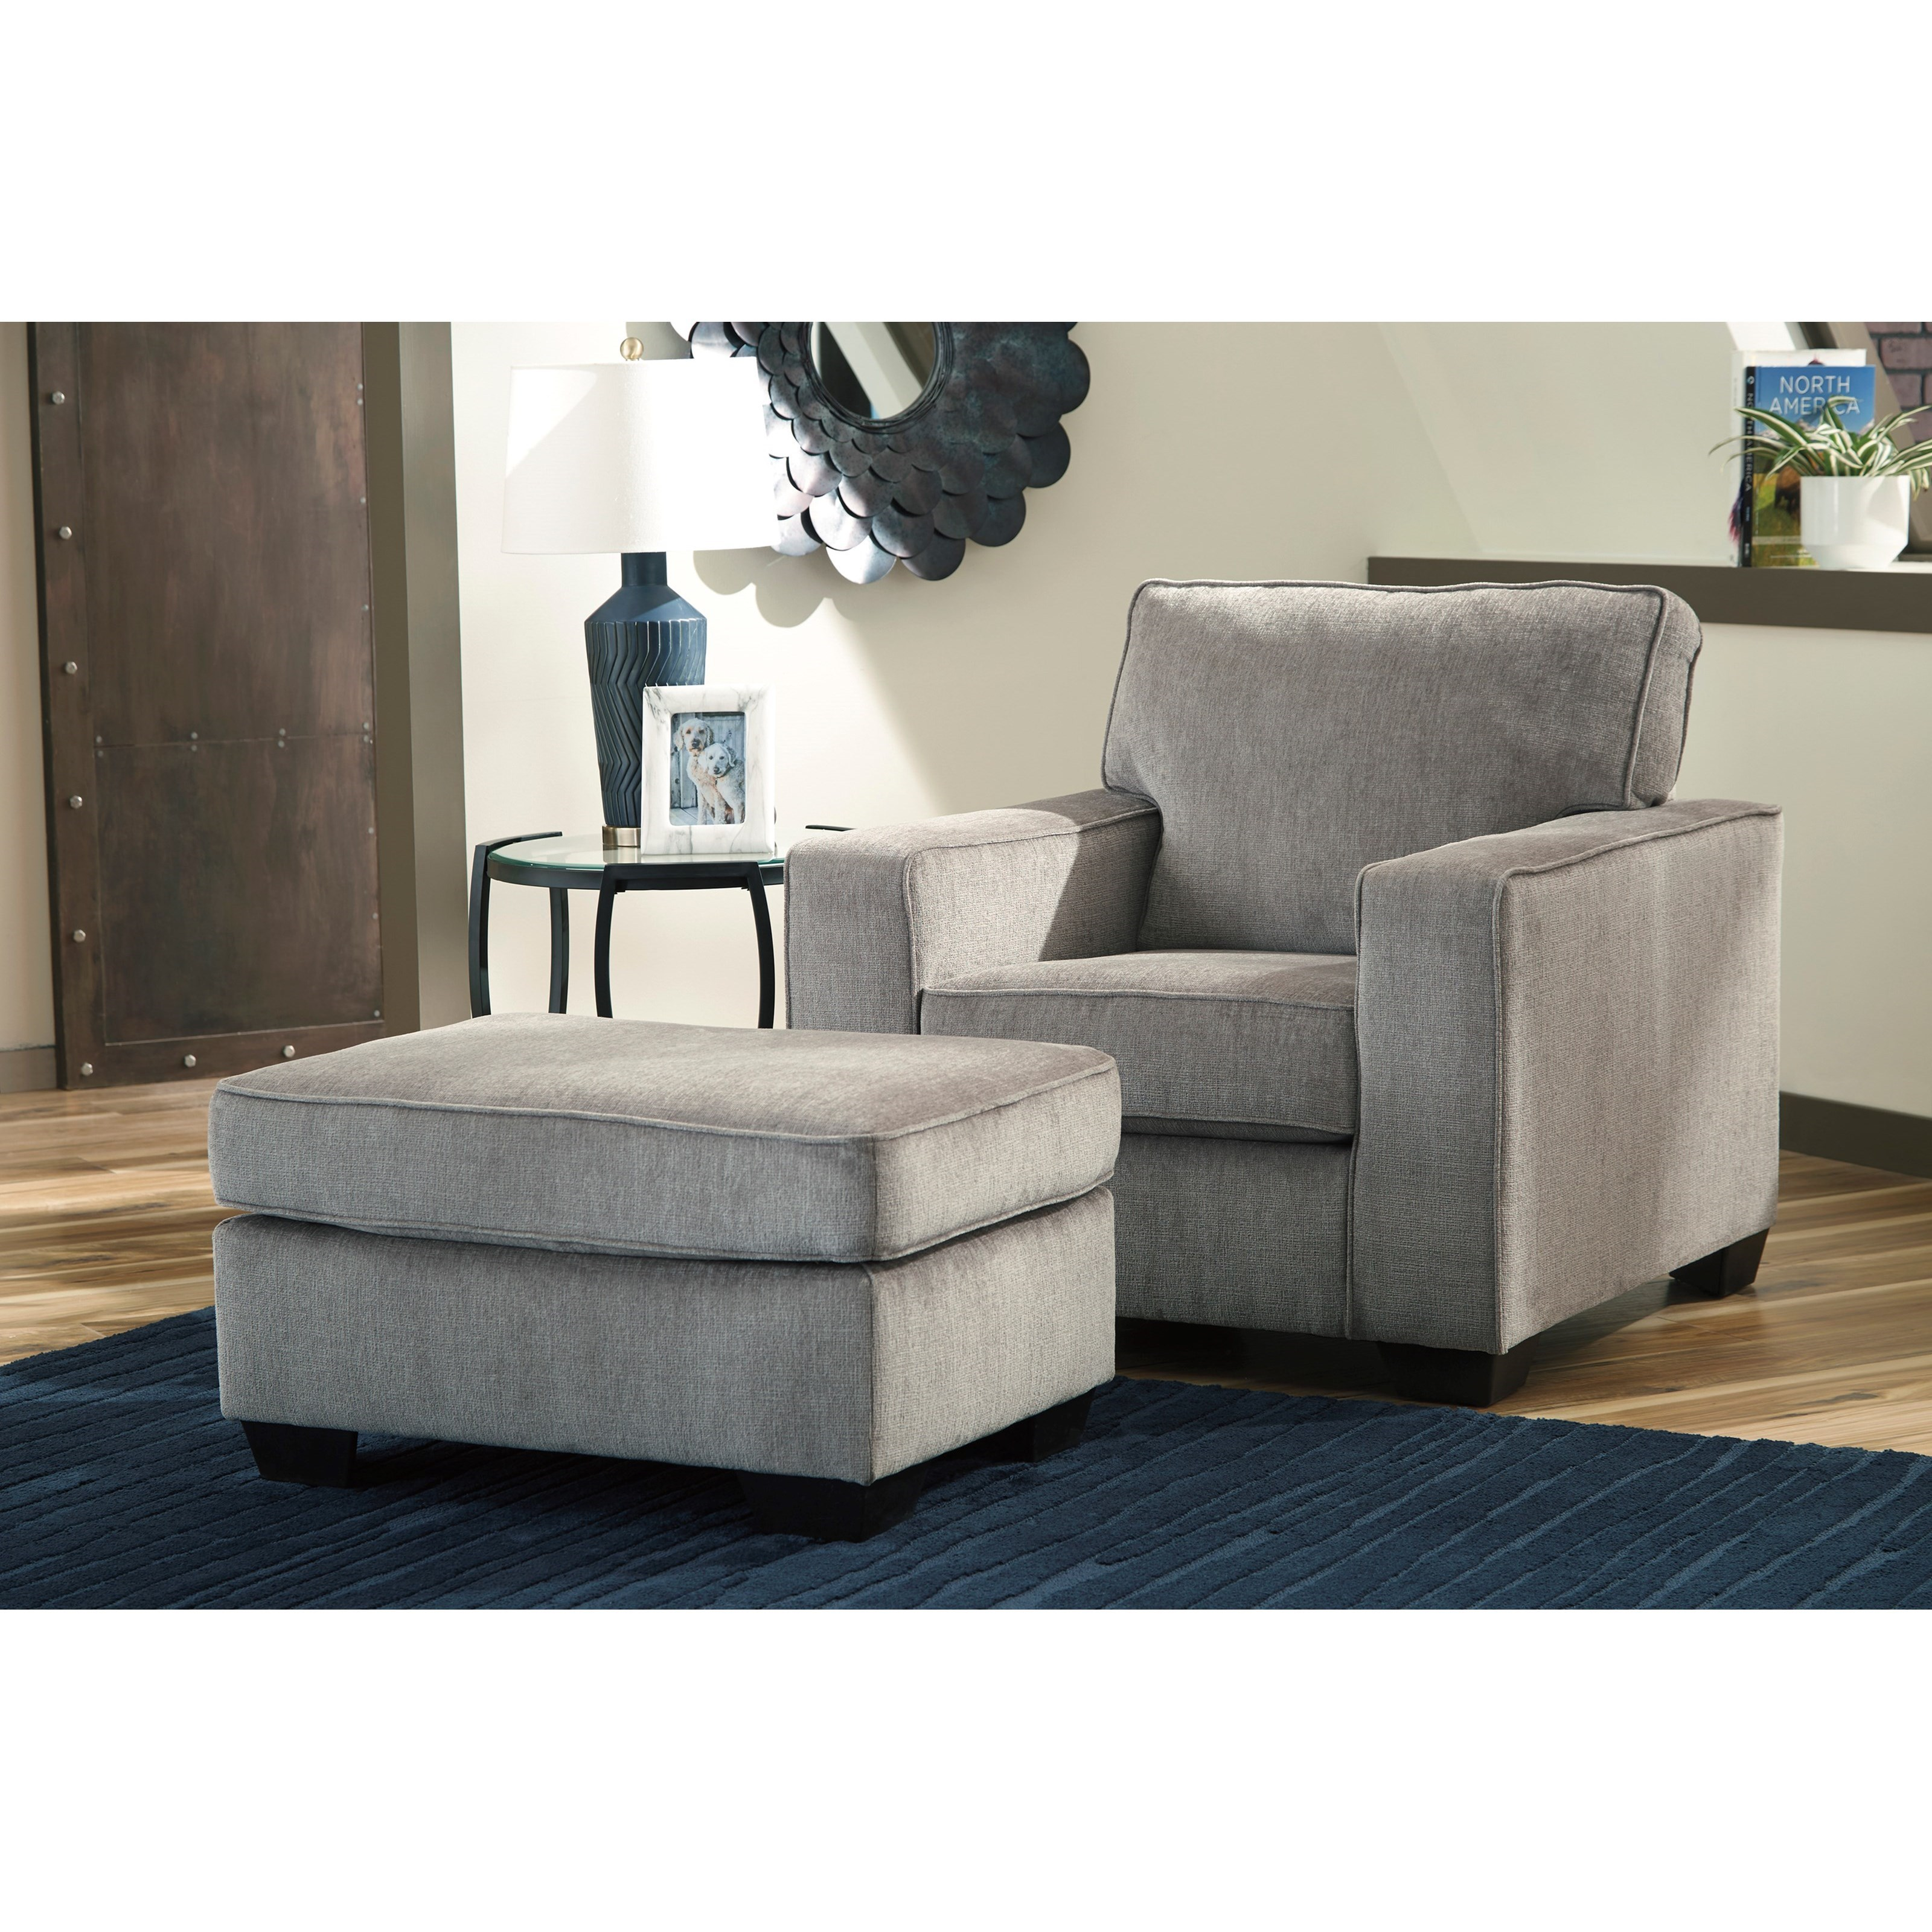 Altari Chair and Ottoman by Signature Design by Ashley at Sparks HomeStore